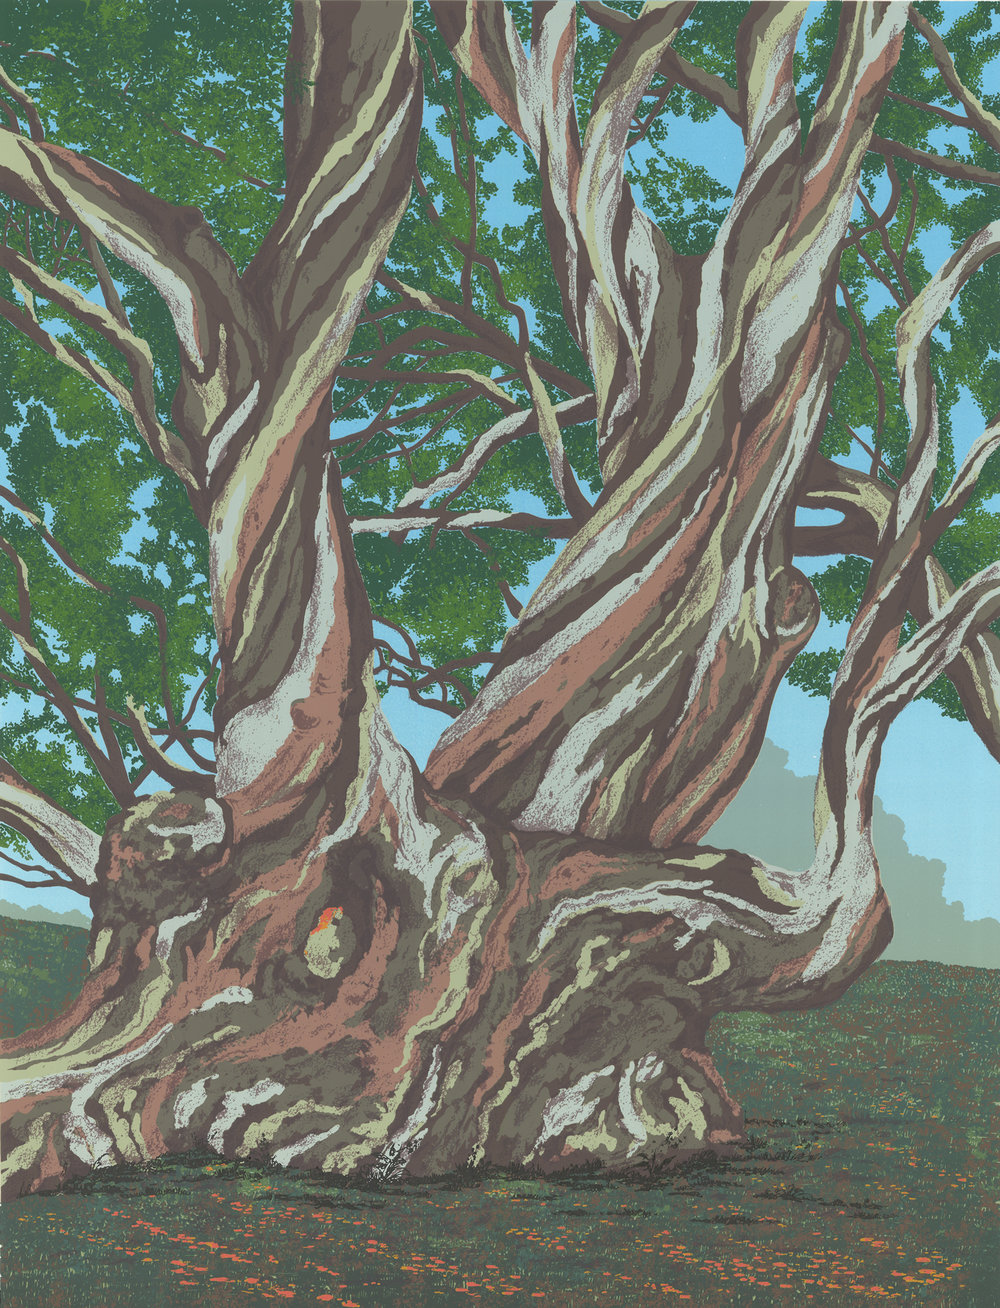 "186   Gum Trees - state 3   24"" x 18"" – 610 x 460mm 20 colors 10 edition / 4 available $450"